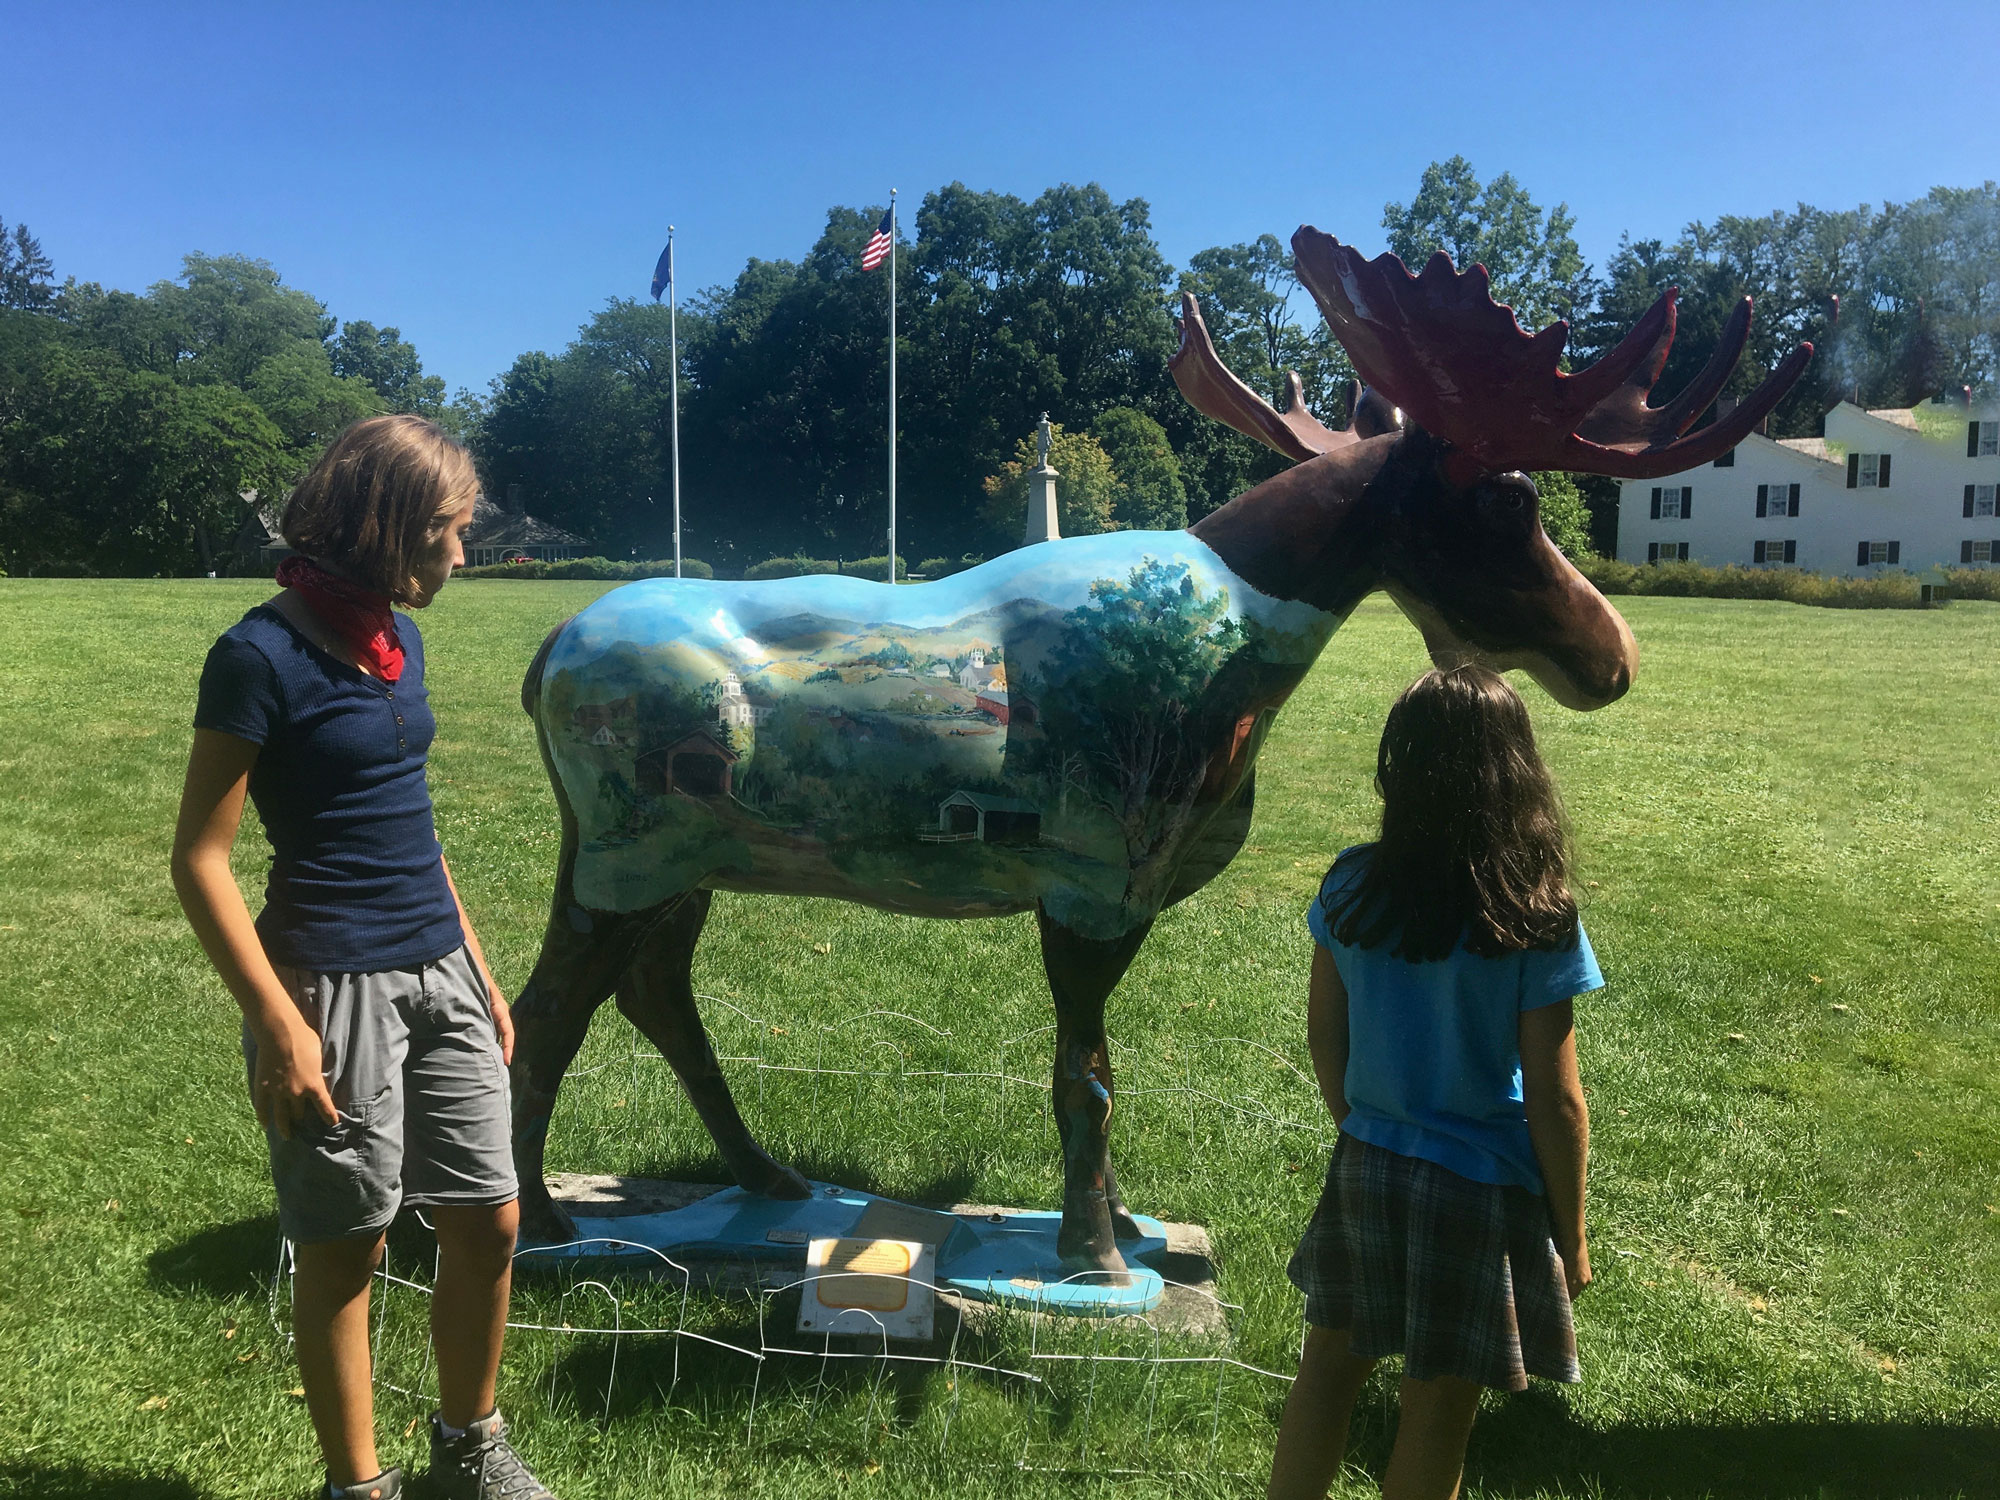 Two girls looking at Benny the Moose in Bennington, Vermont